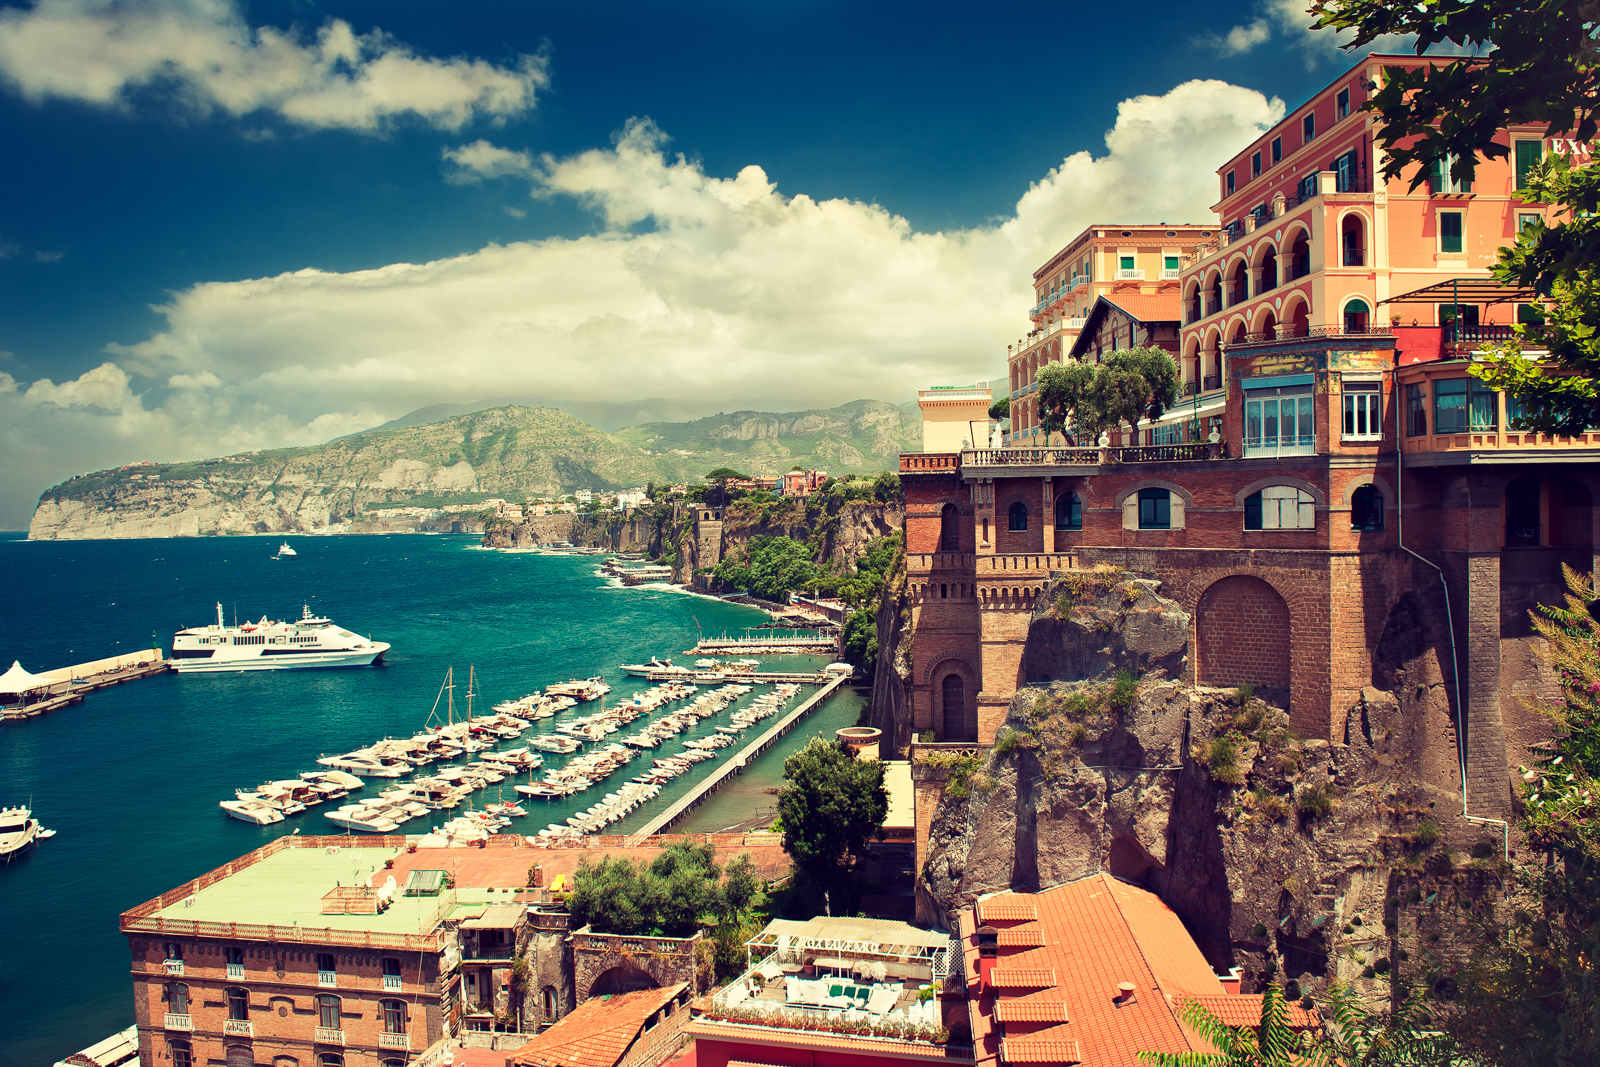 Top things to do in Amalfi Coast landmarks in Sorrento place. Amalfi coast. Italy. Cliff ,beach and boat pier.